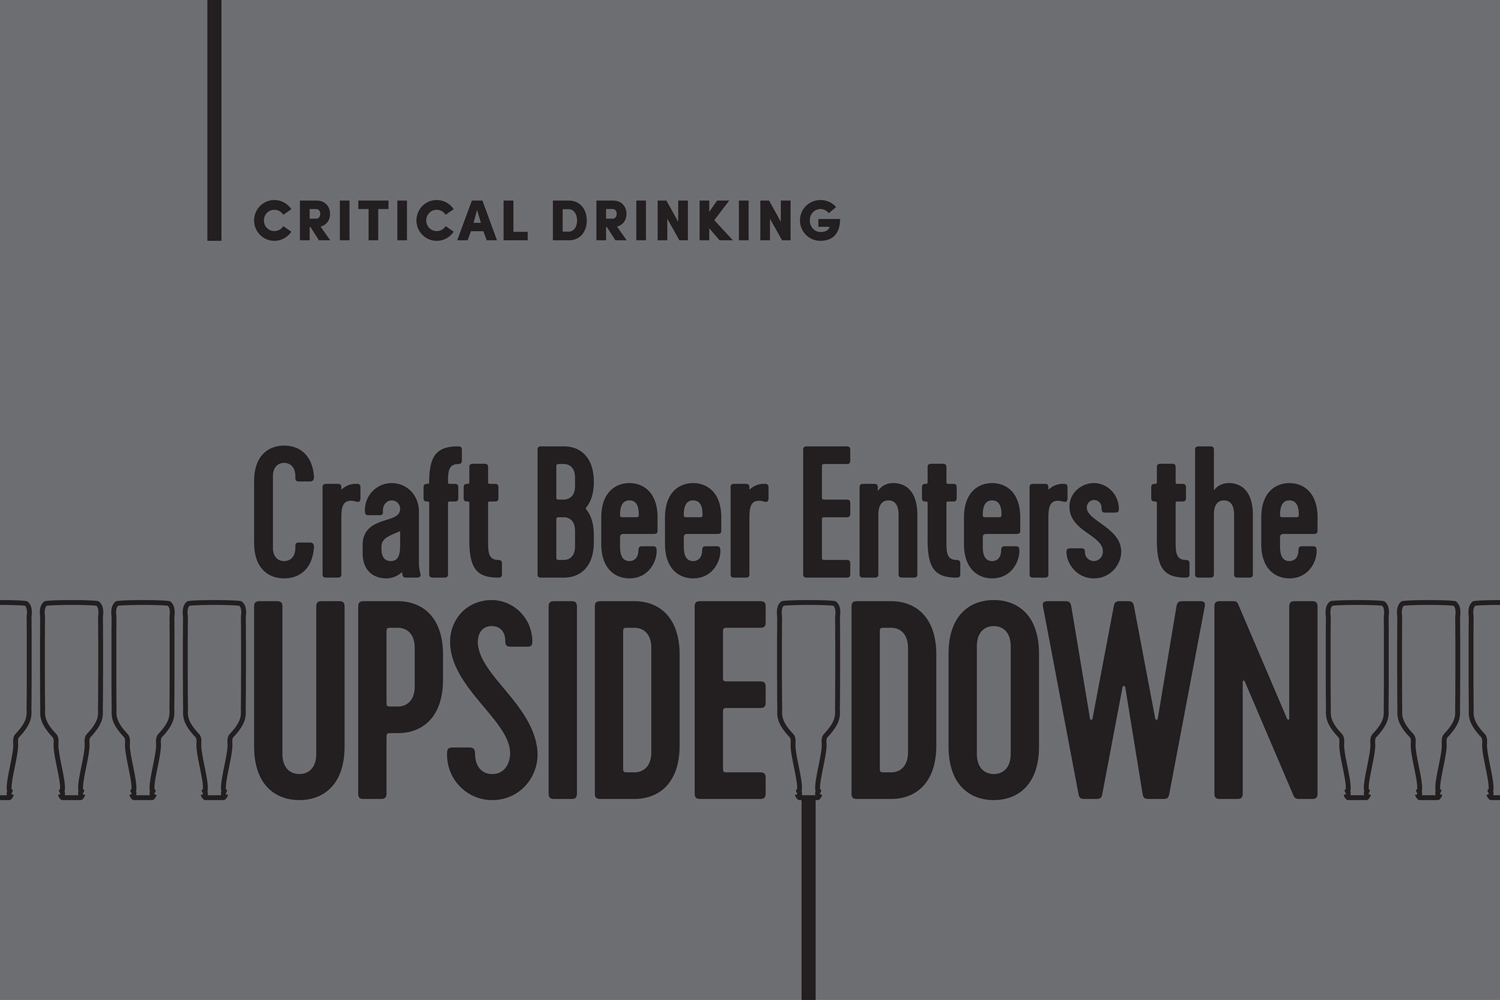 Craft Beer Enters The Upside Down A Design Analysis Good Beer